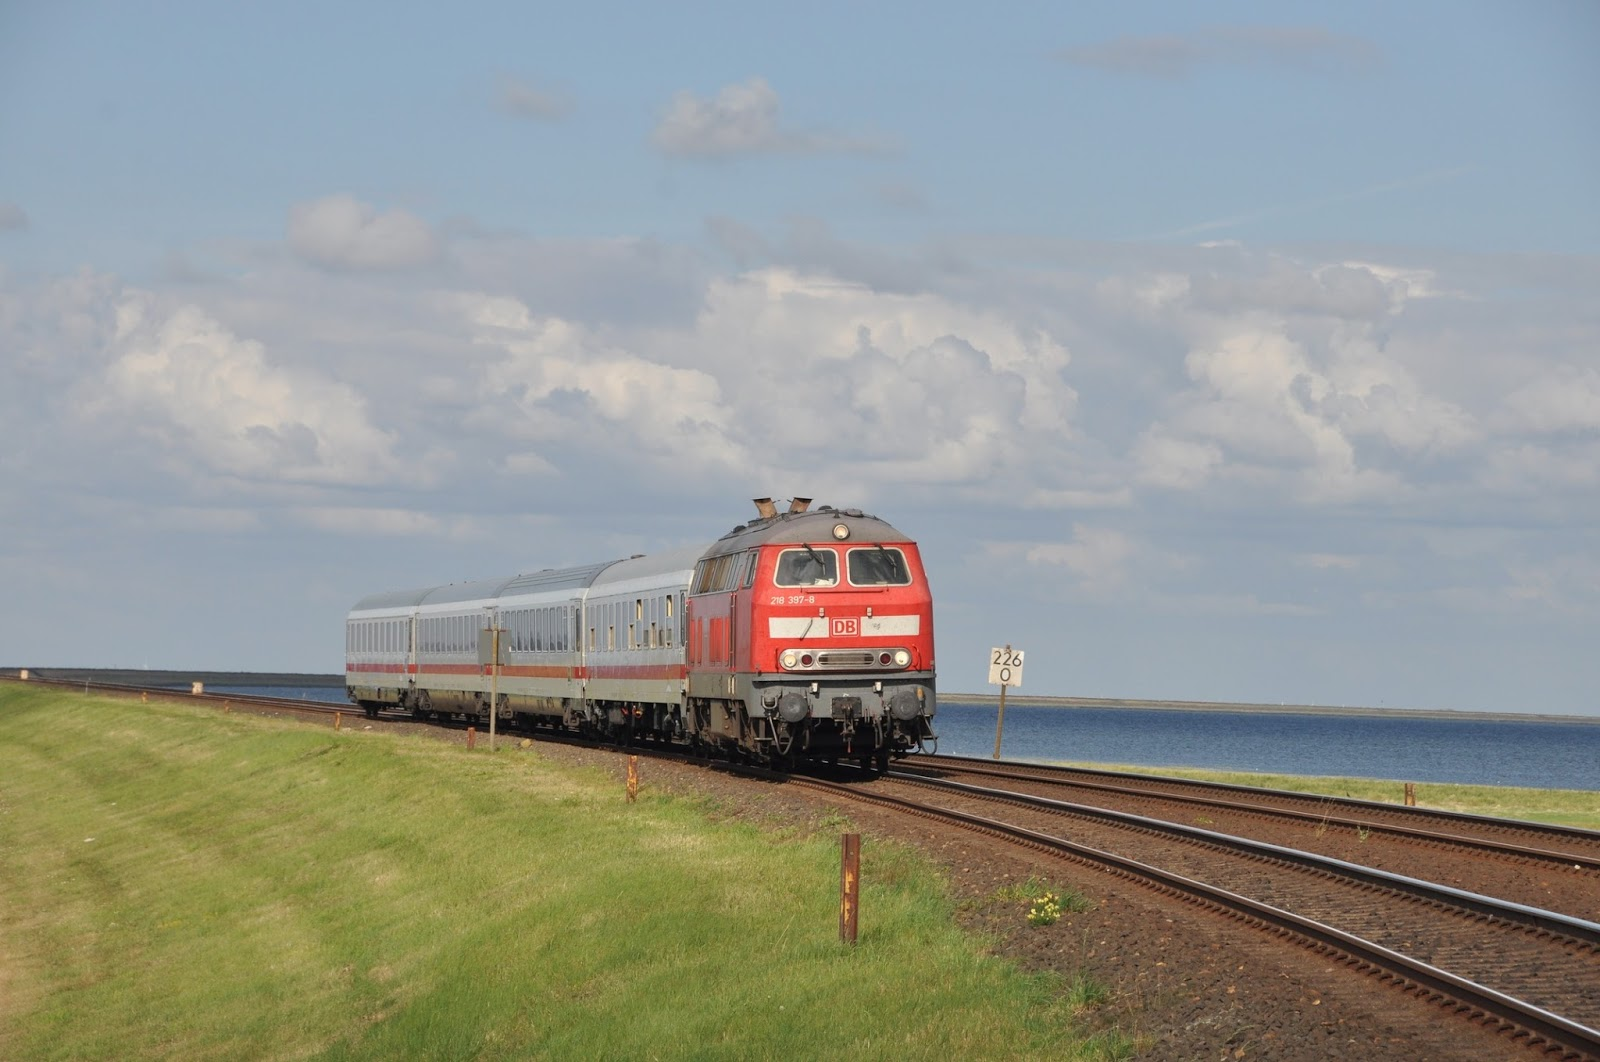 Trains today db dsb trip report 29th july 1st august 2014 - Sylt mobel niebull ...